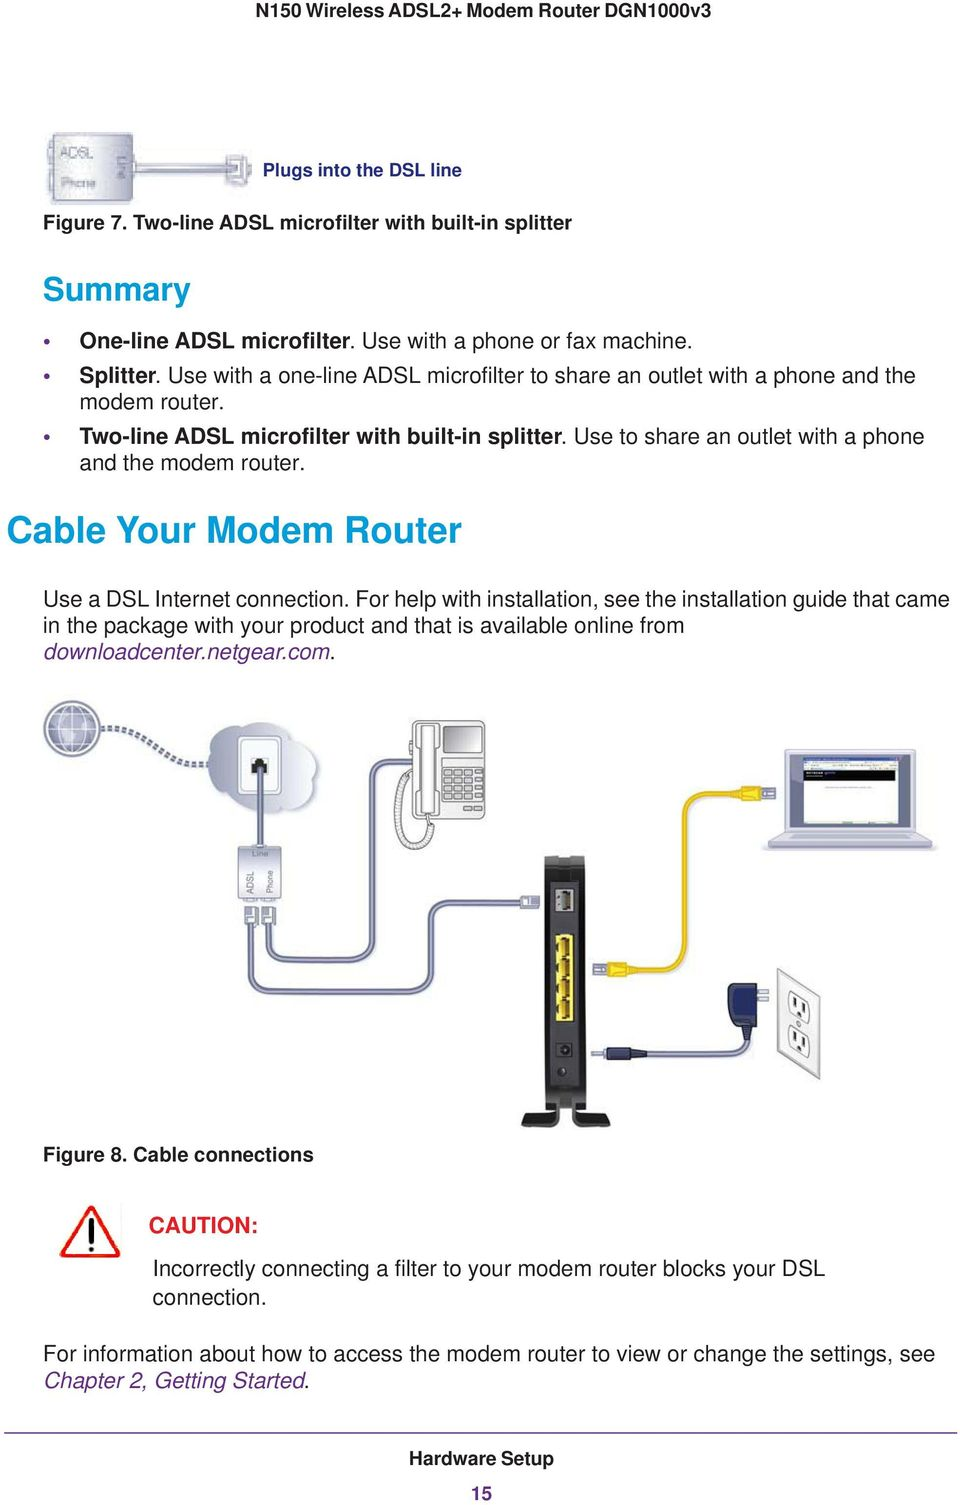 N150 Wireless Adsl2 Modem Router Dgn1000v3 Pdf Wiring Diagram For Dsl Inter On Phone Line Splitter Cable Your Use A Internet Connection